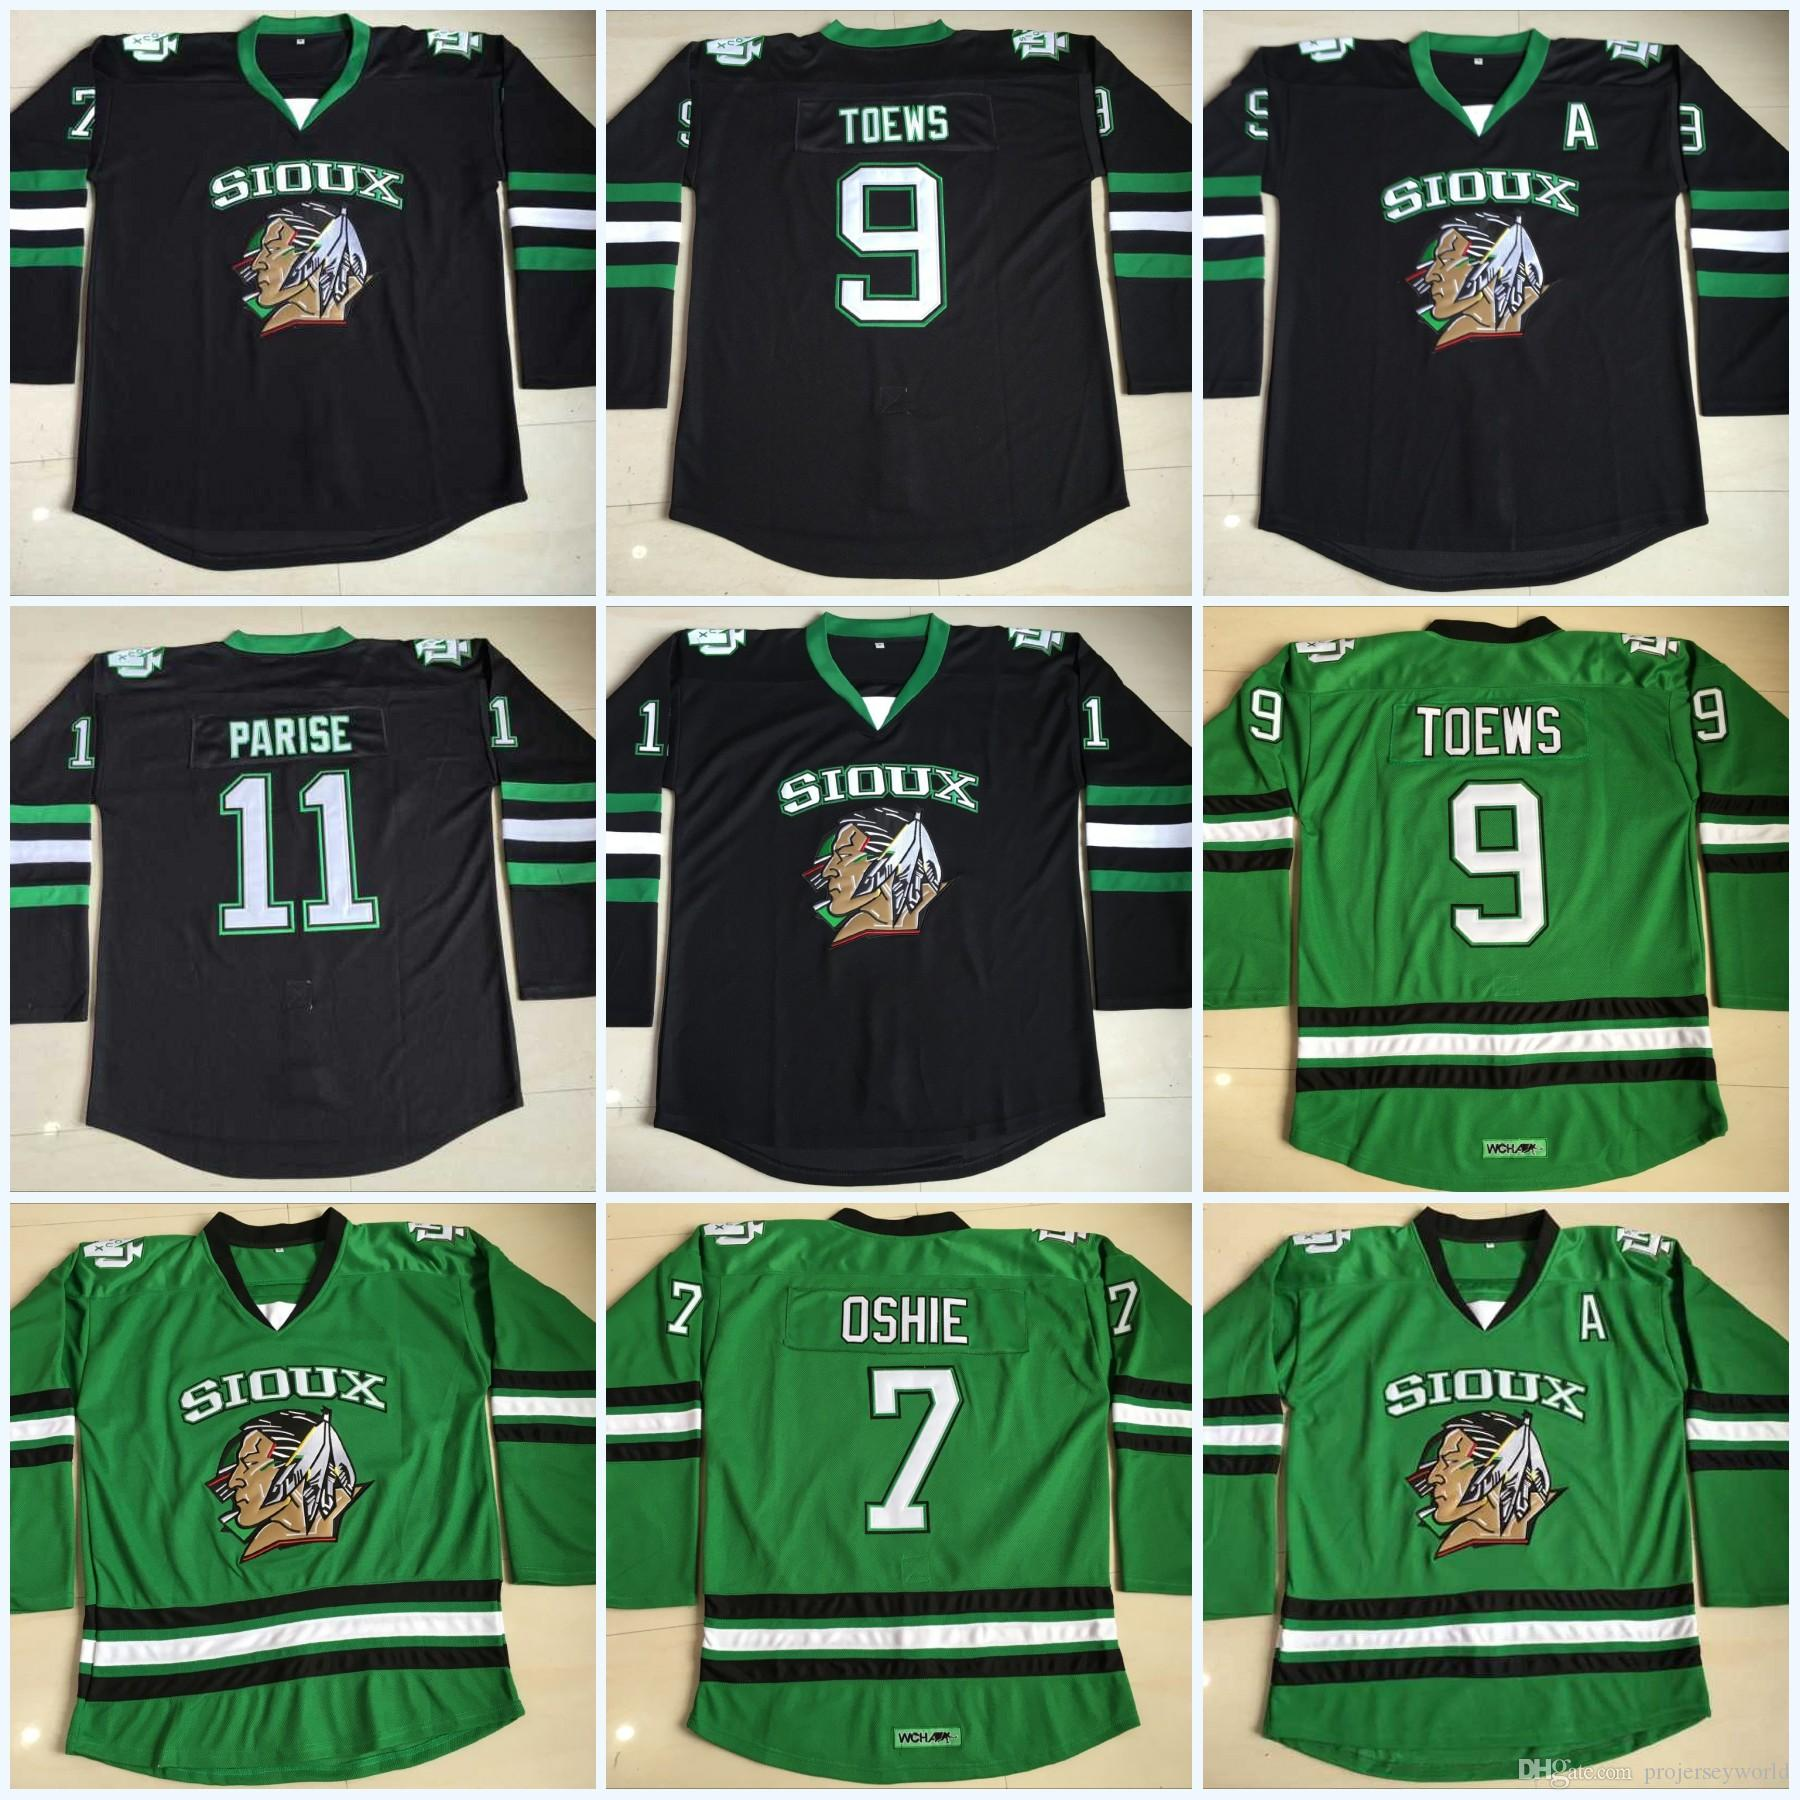 Youth North Dakota Fighting Sioux Hockey Jersey  9 Jonathan Toews  7 TJ  Oshie  11 Zach Parise Blank Green University Jerseys UK 2019 From  Projerseyworld 150f61a50d0